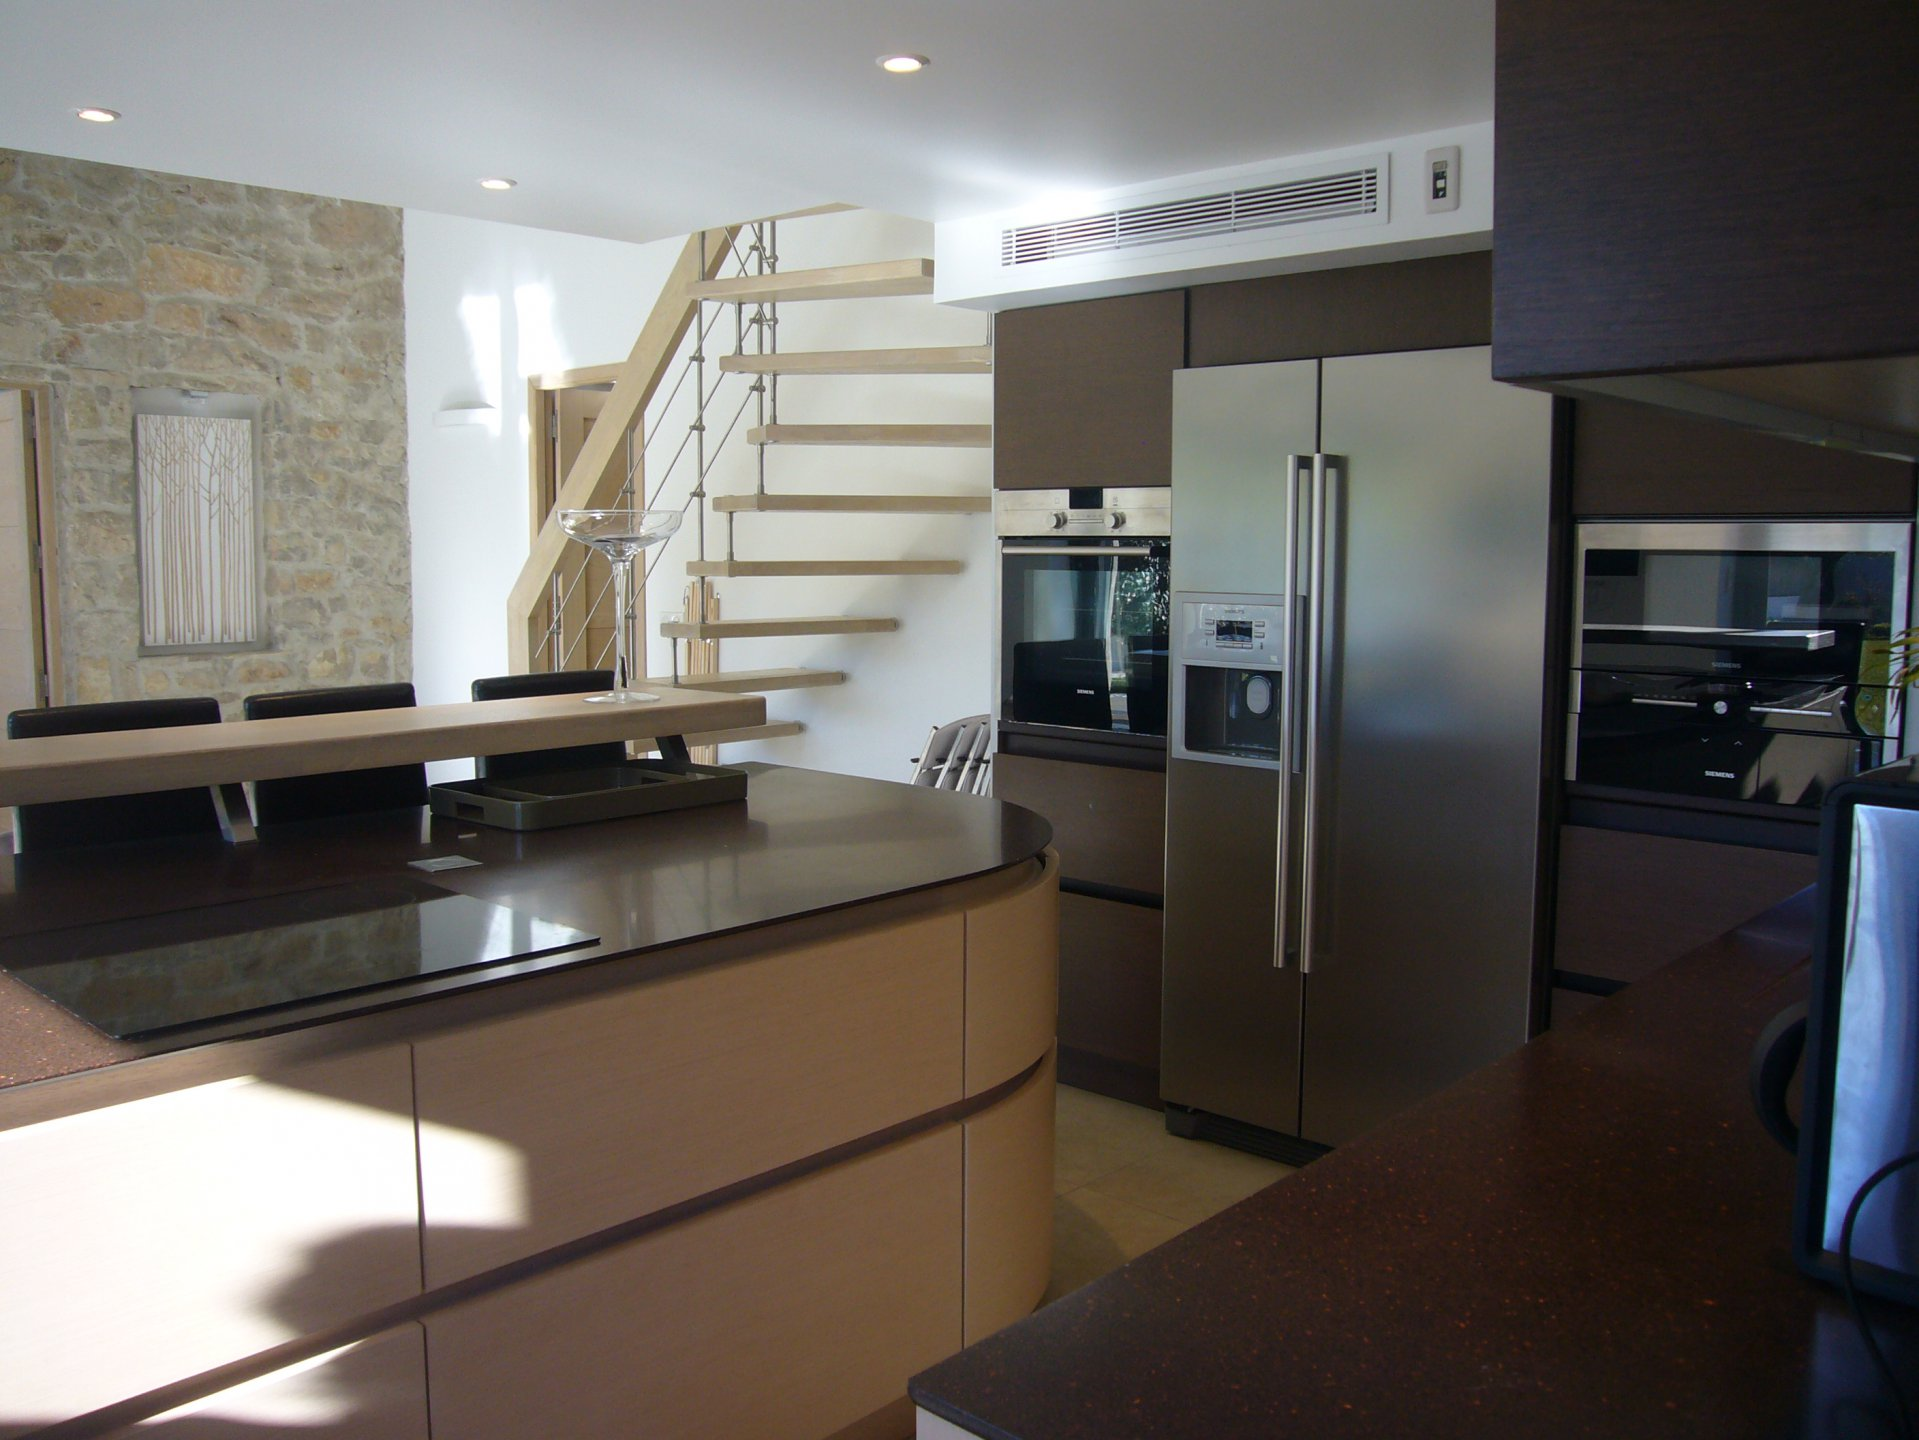 Kitchen, stainless steel